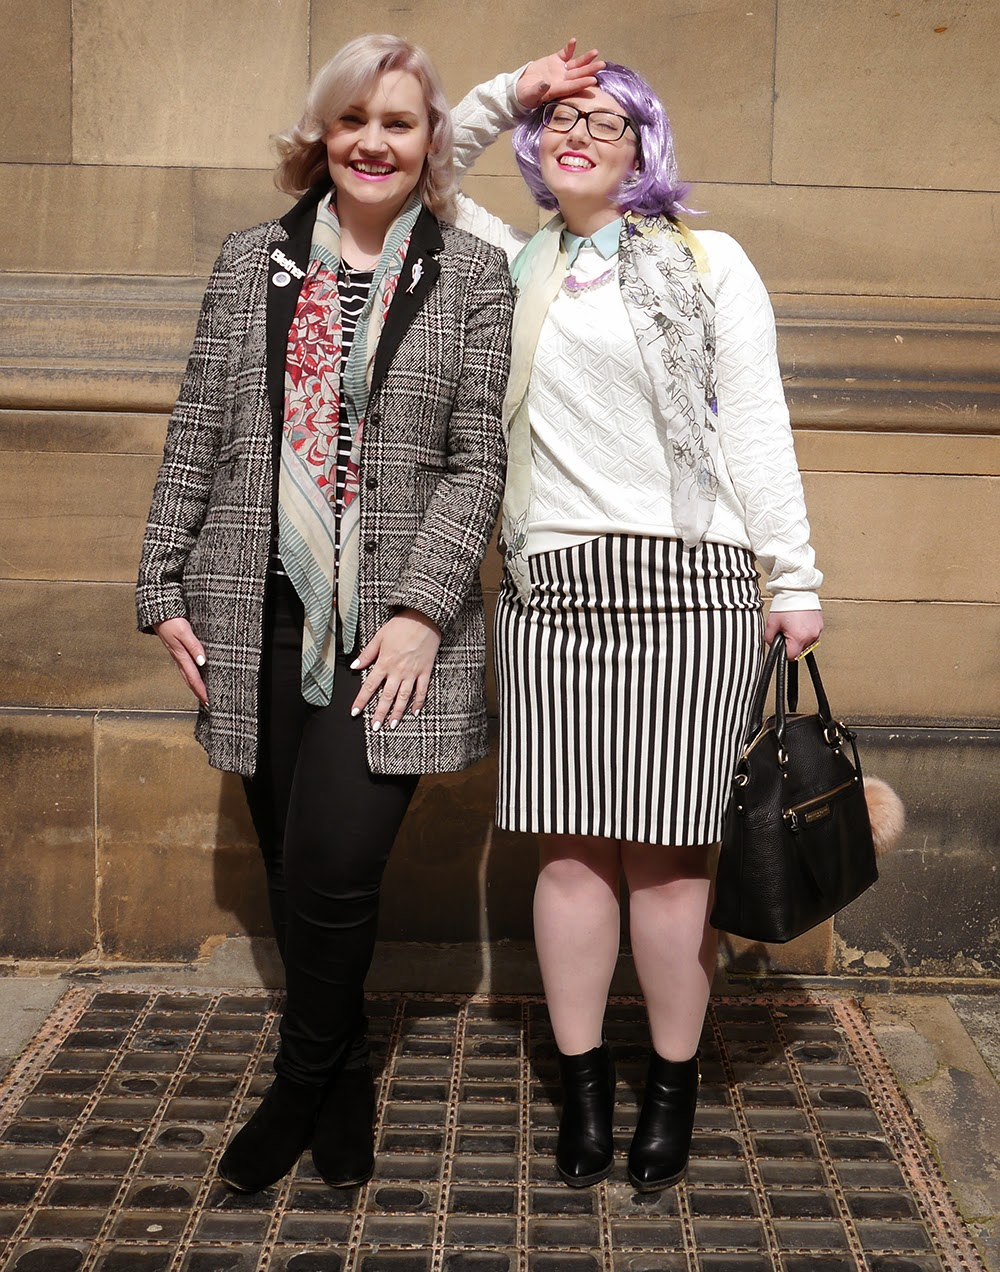 #scotstreetstyle, #EdFashion, Edinburgh, street style, friends, Scottish bloggers, Scotland, Awards, stylist, blogging duo, fbloggers